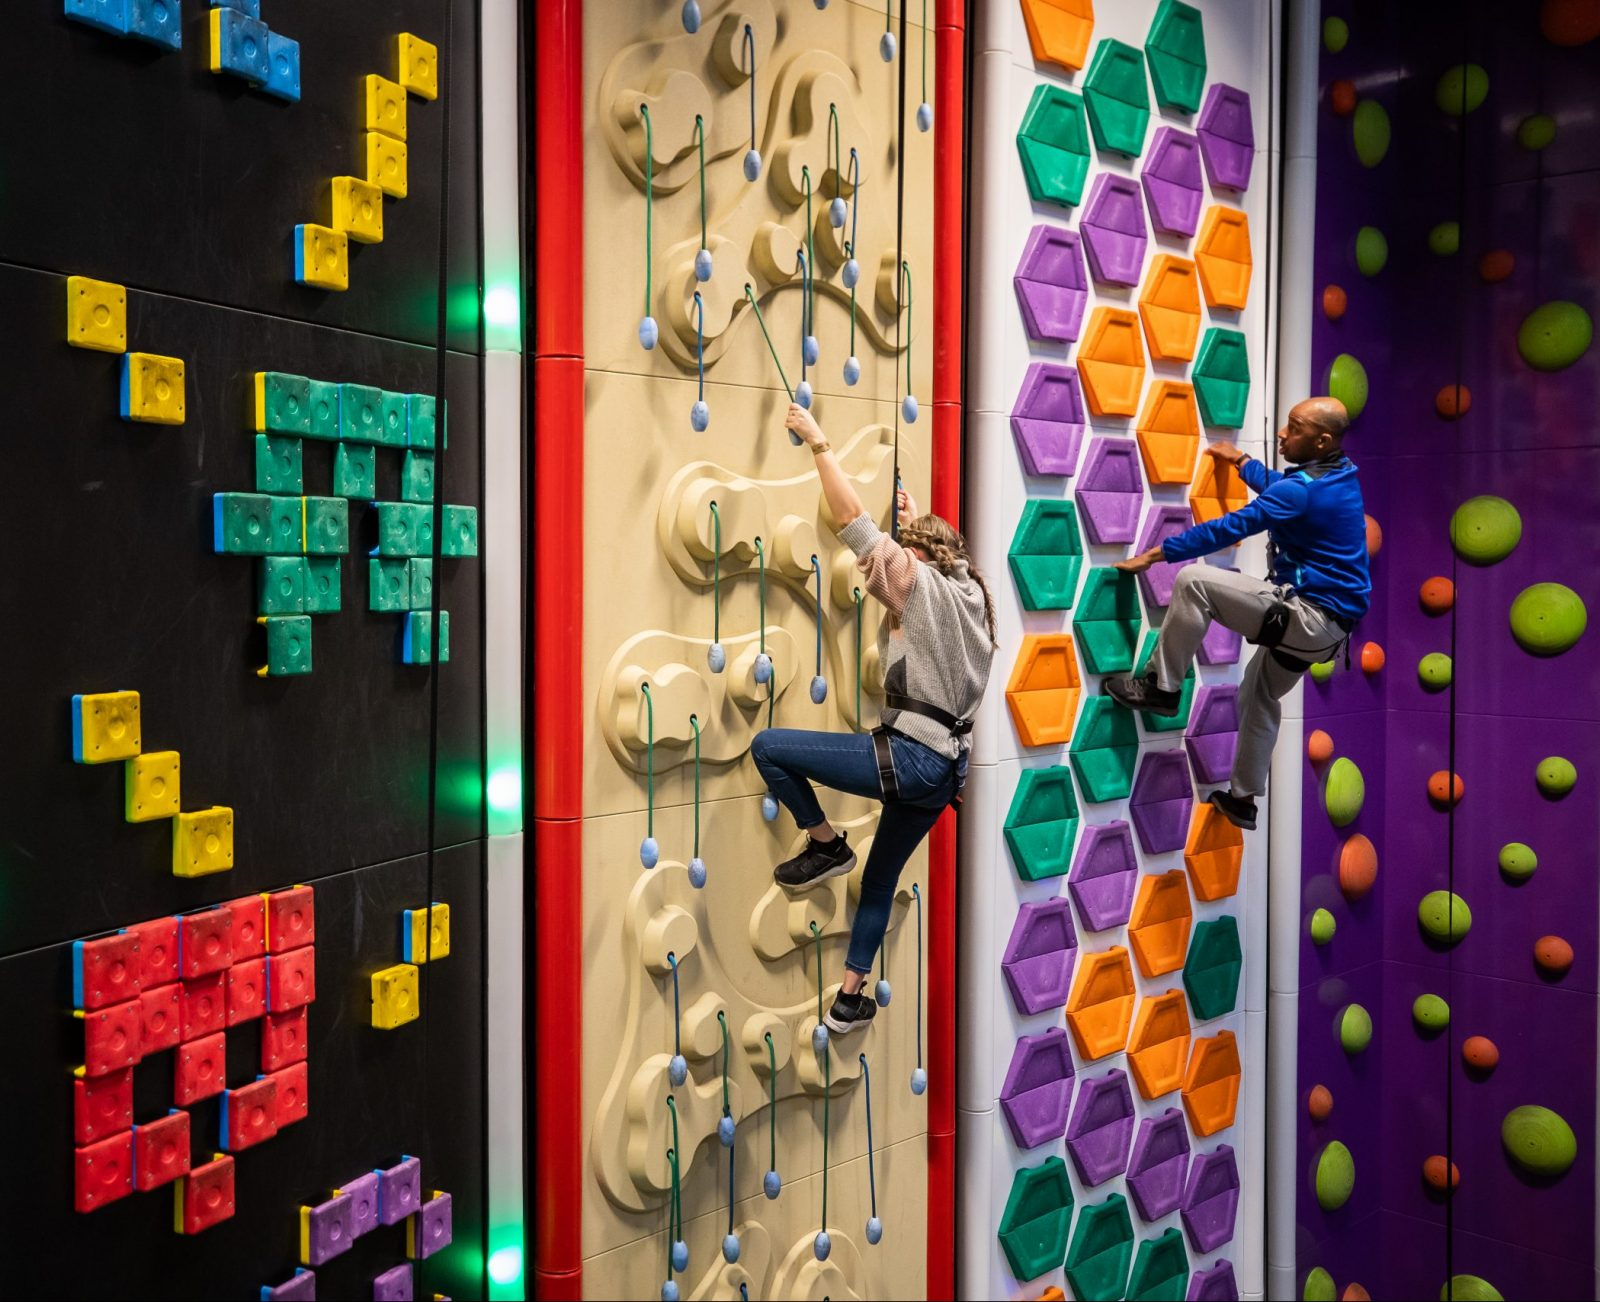 Summit Up: The new purpose-built climbing centre opening in Oldham next week, The Manc